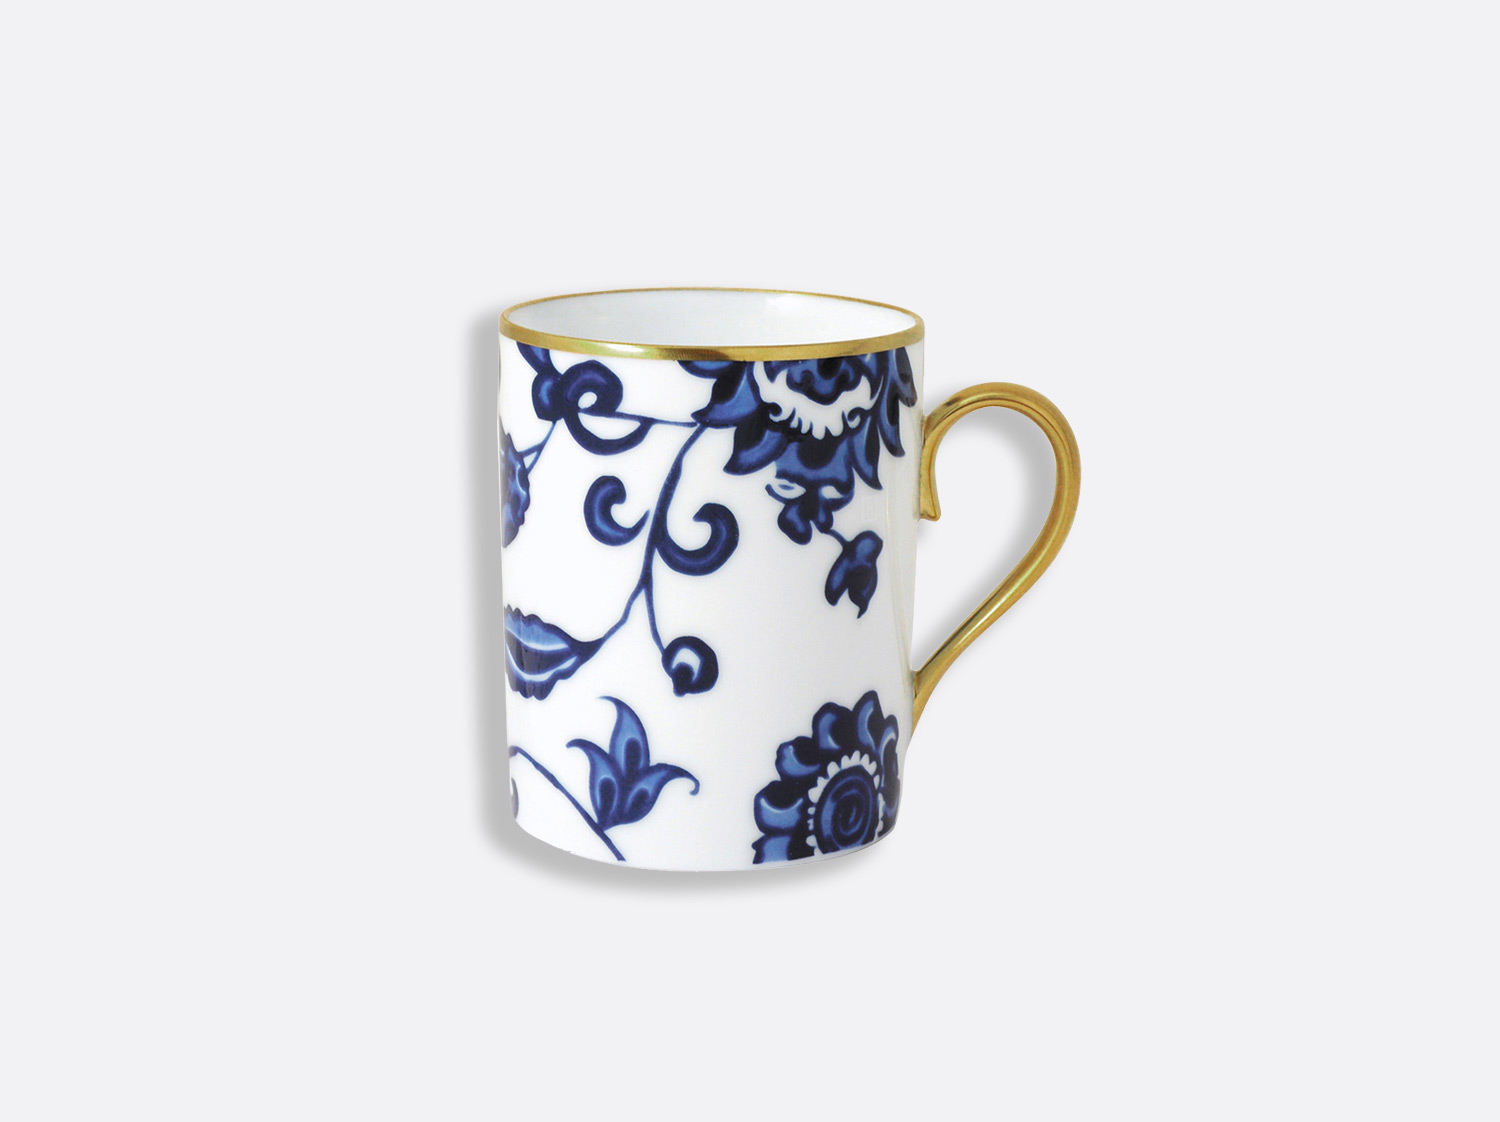 Mug 30 cl en porcelaine de la collection Prince bleu Bernardaud